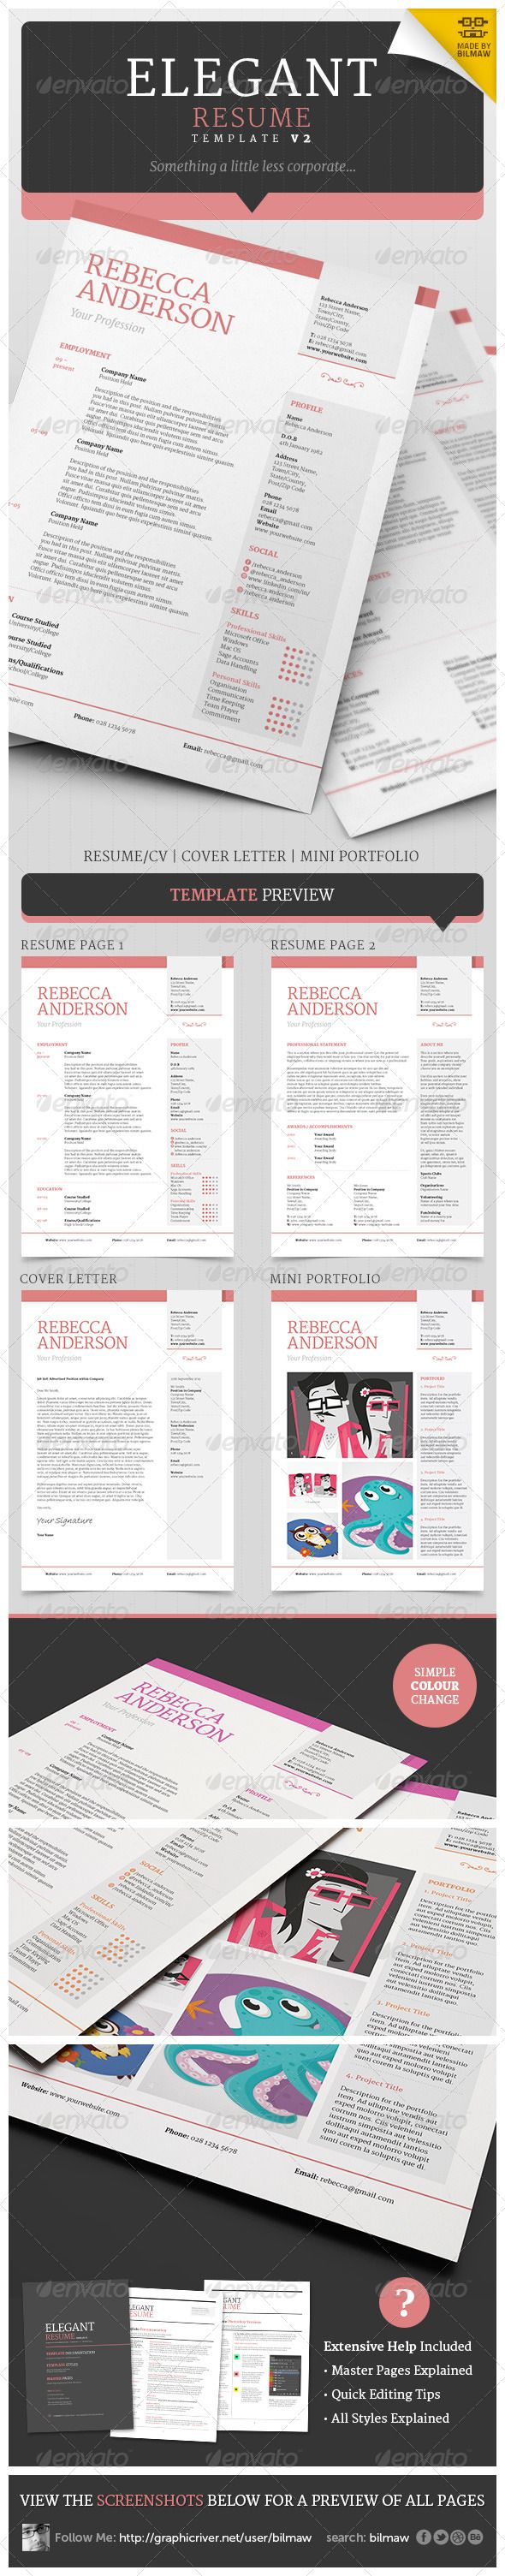 elegant resume cv v2 letter templates letter template word and elegant resume cv cover letter mini portfolio easy to edit ms word